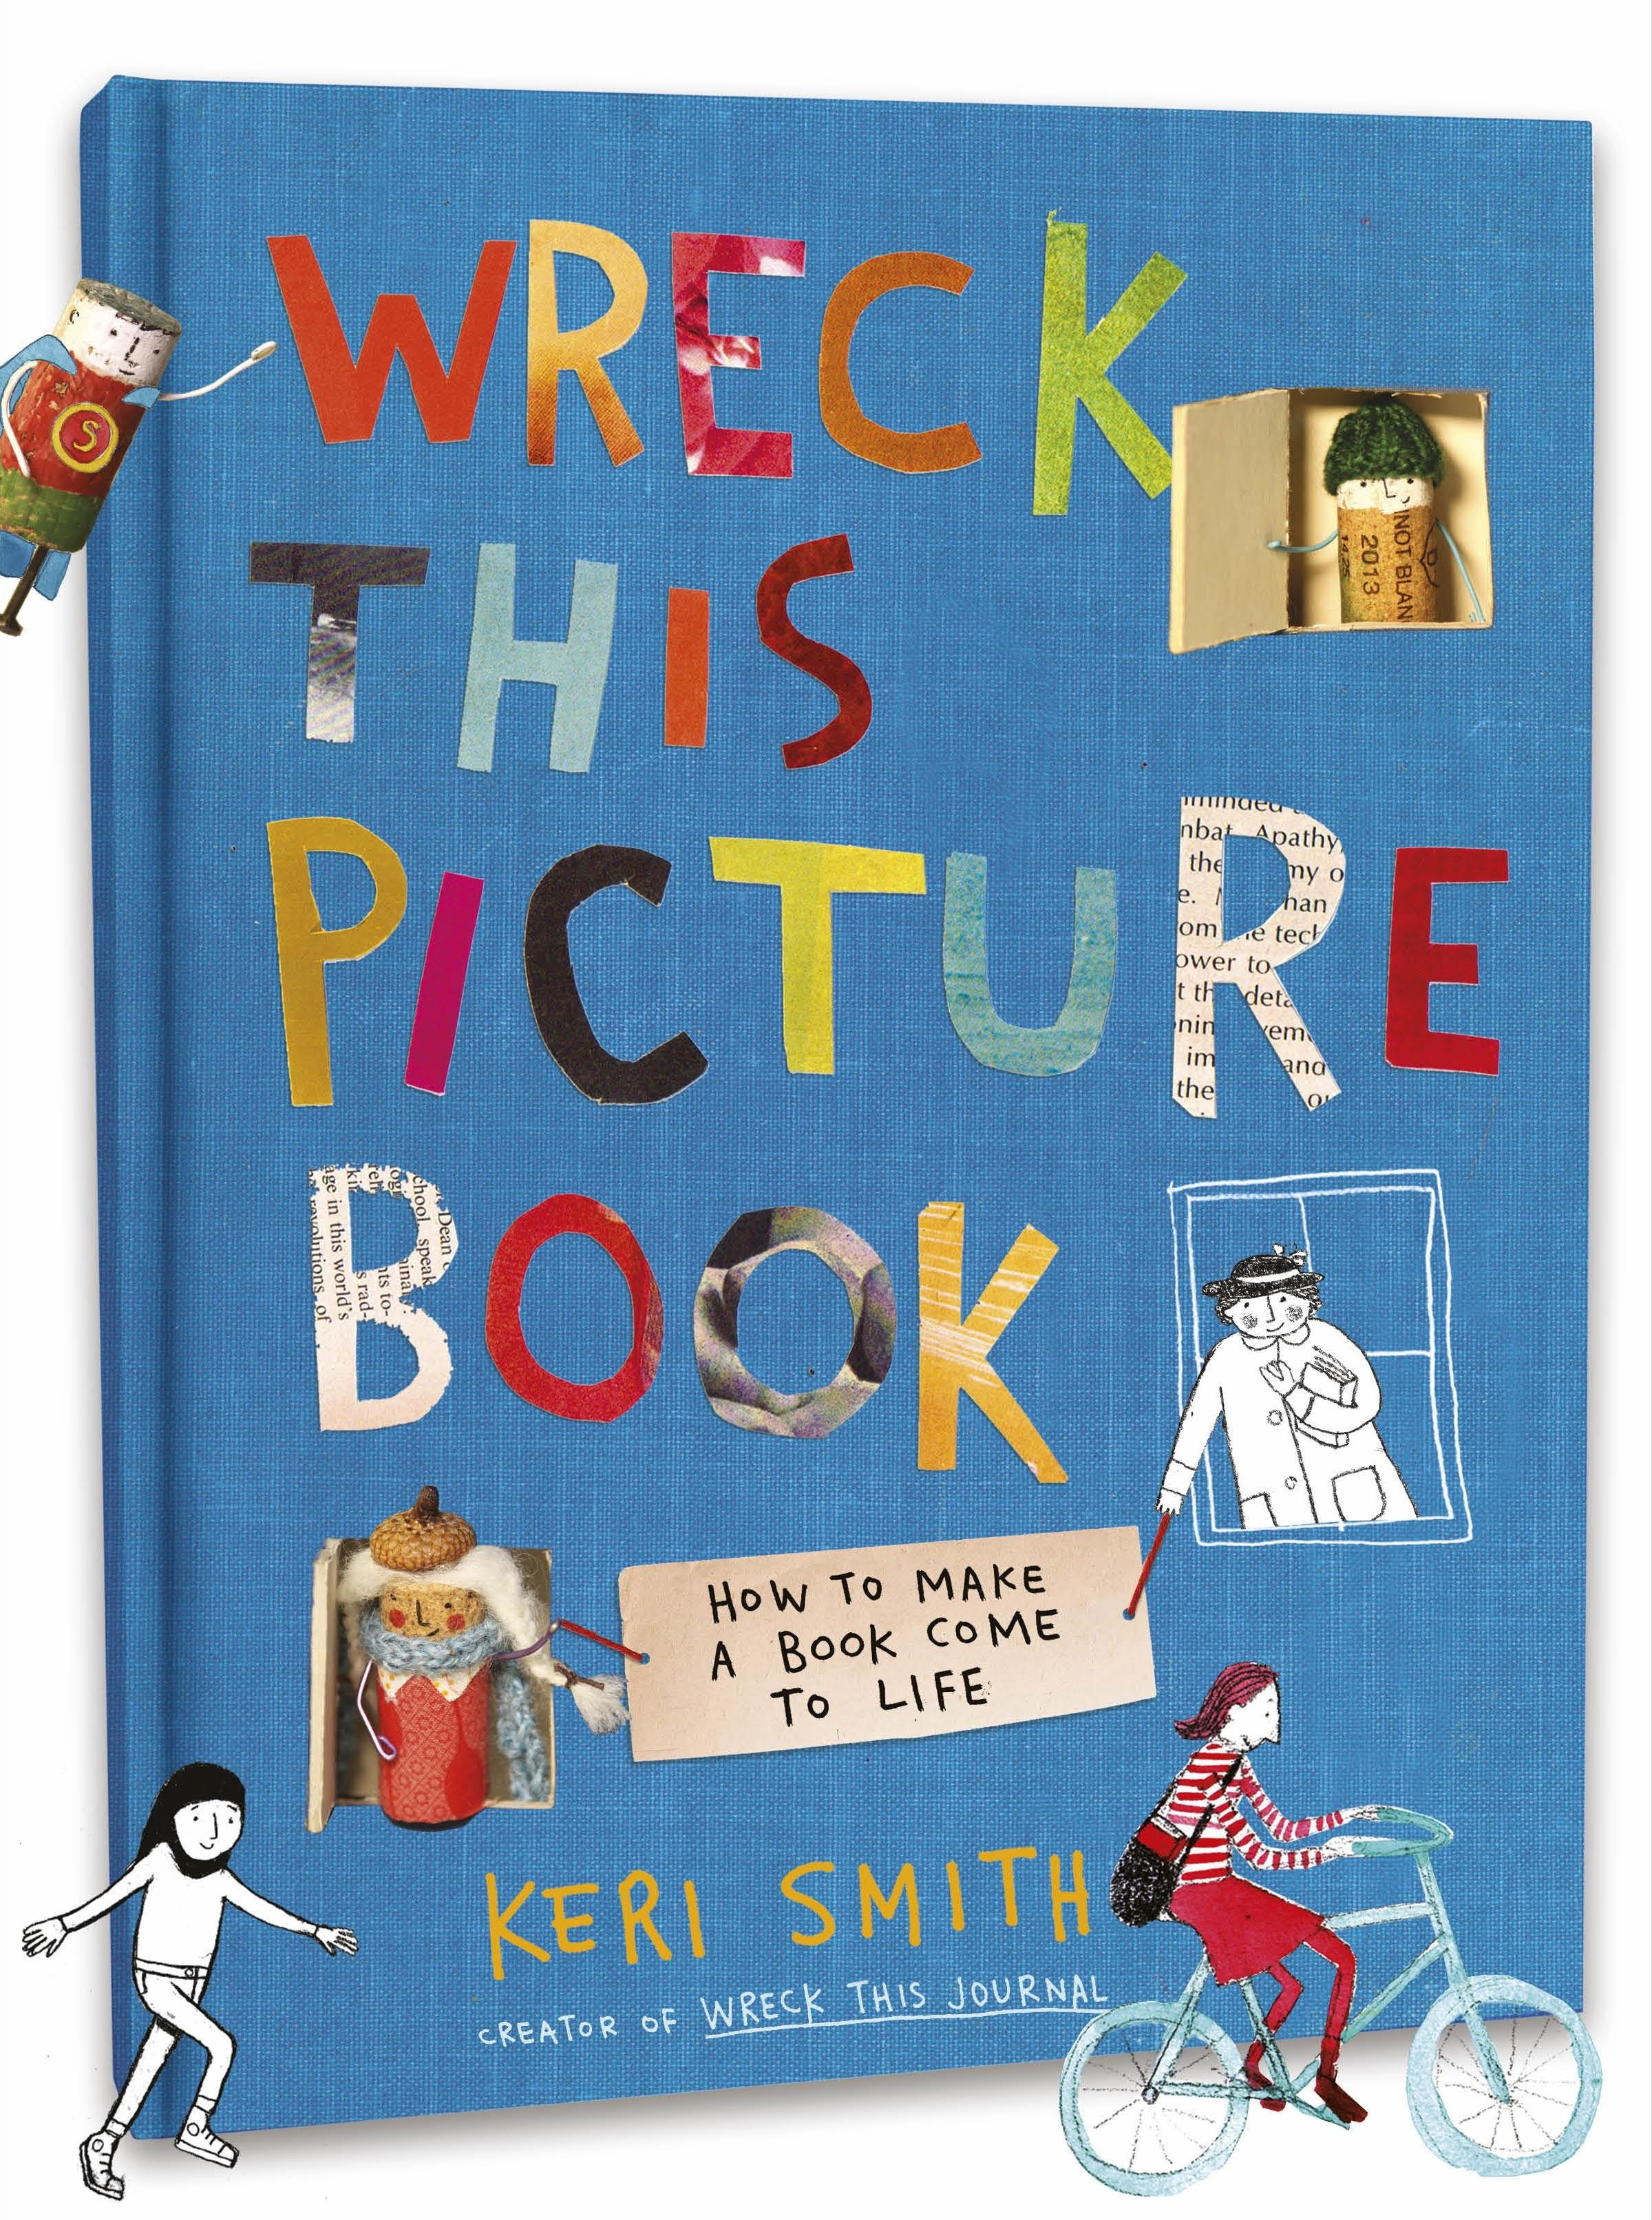 WRECK THIS PICTURE BOOK PB